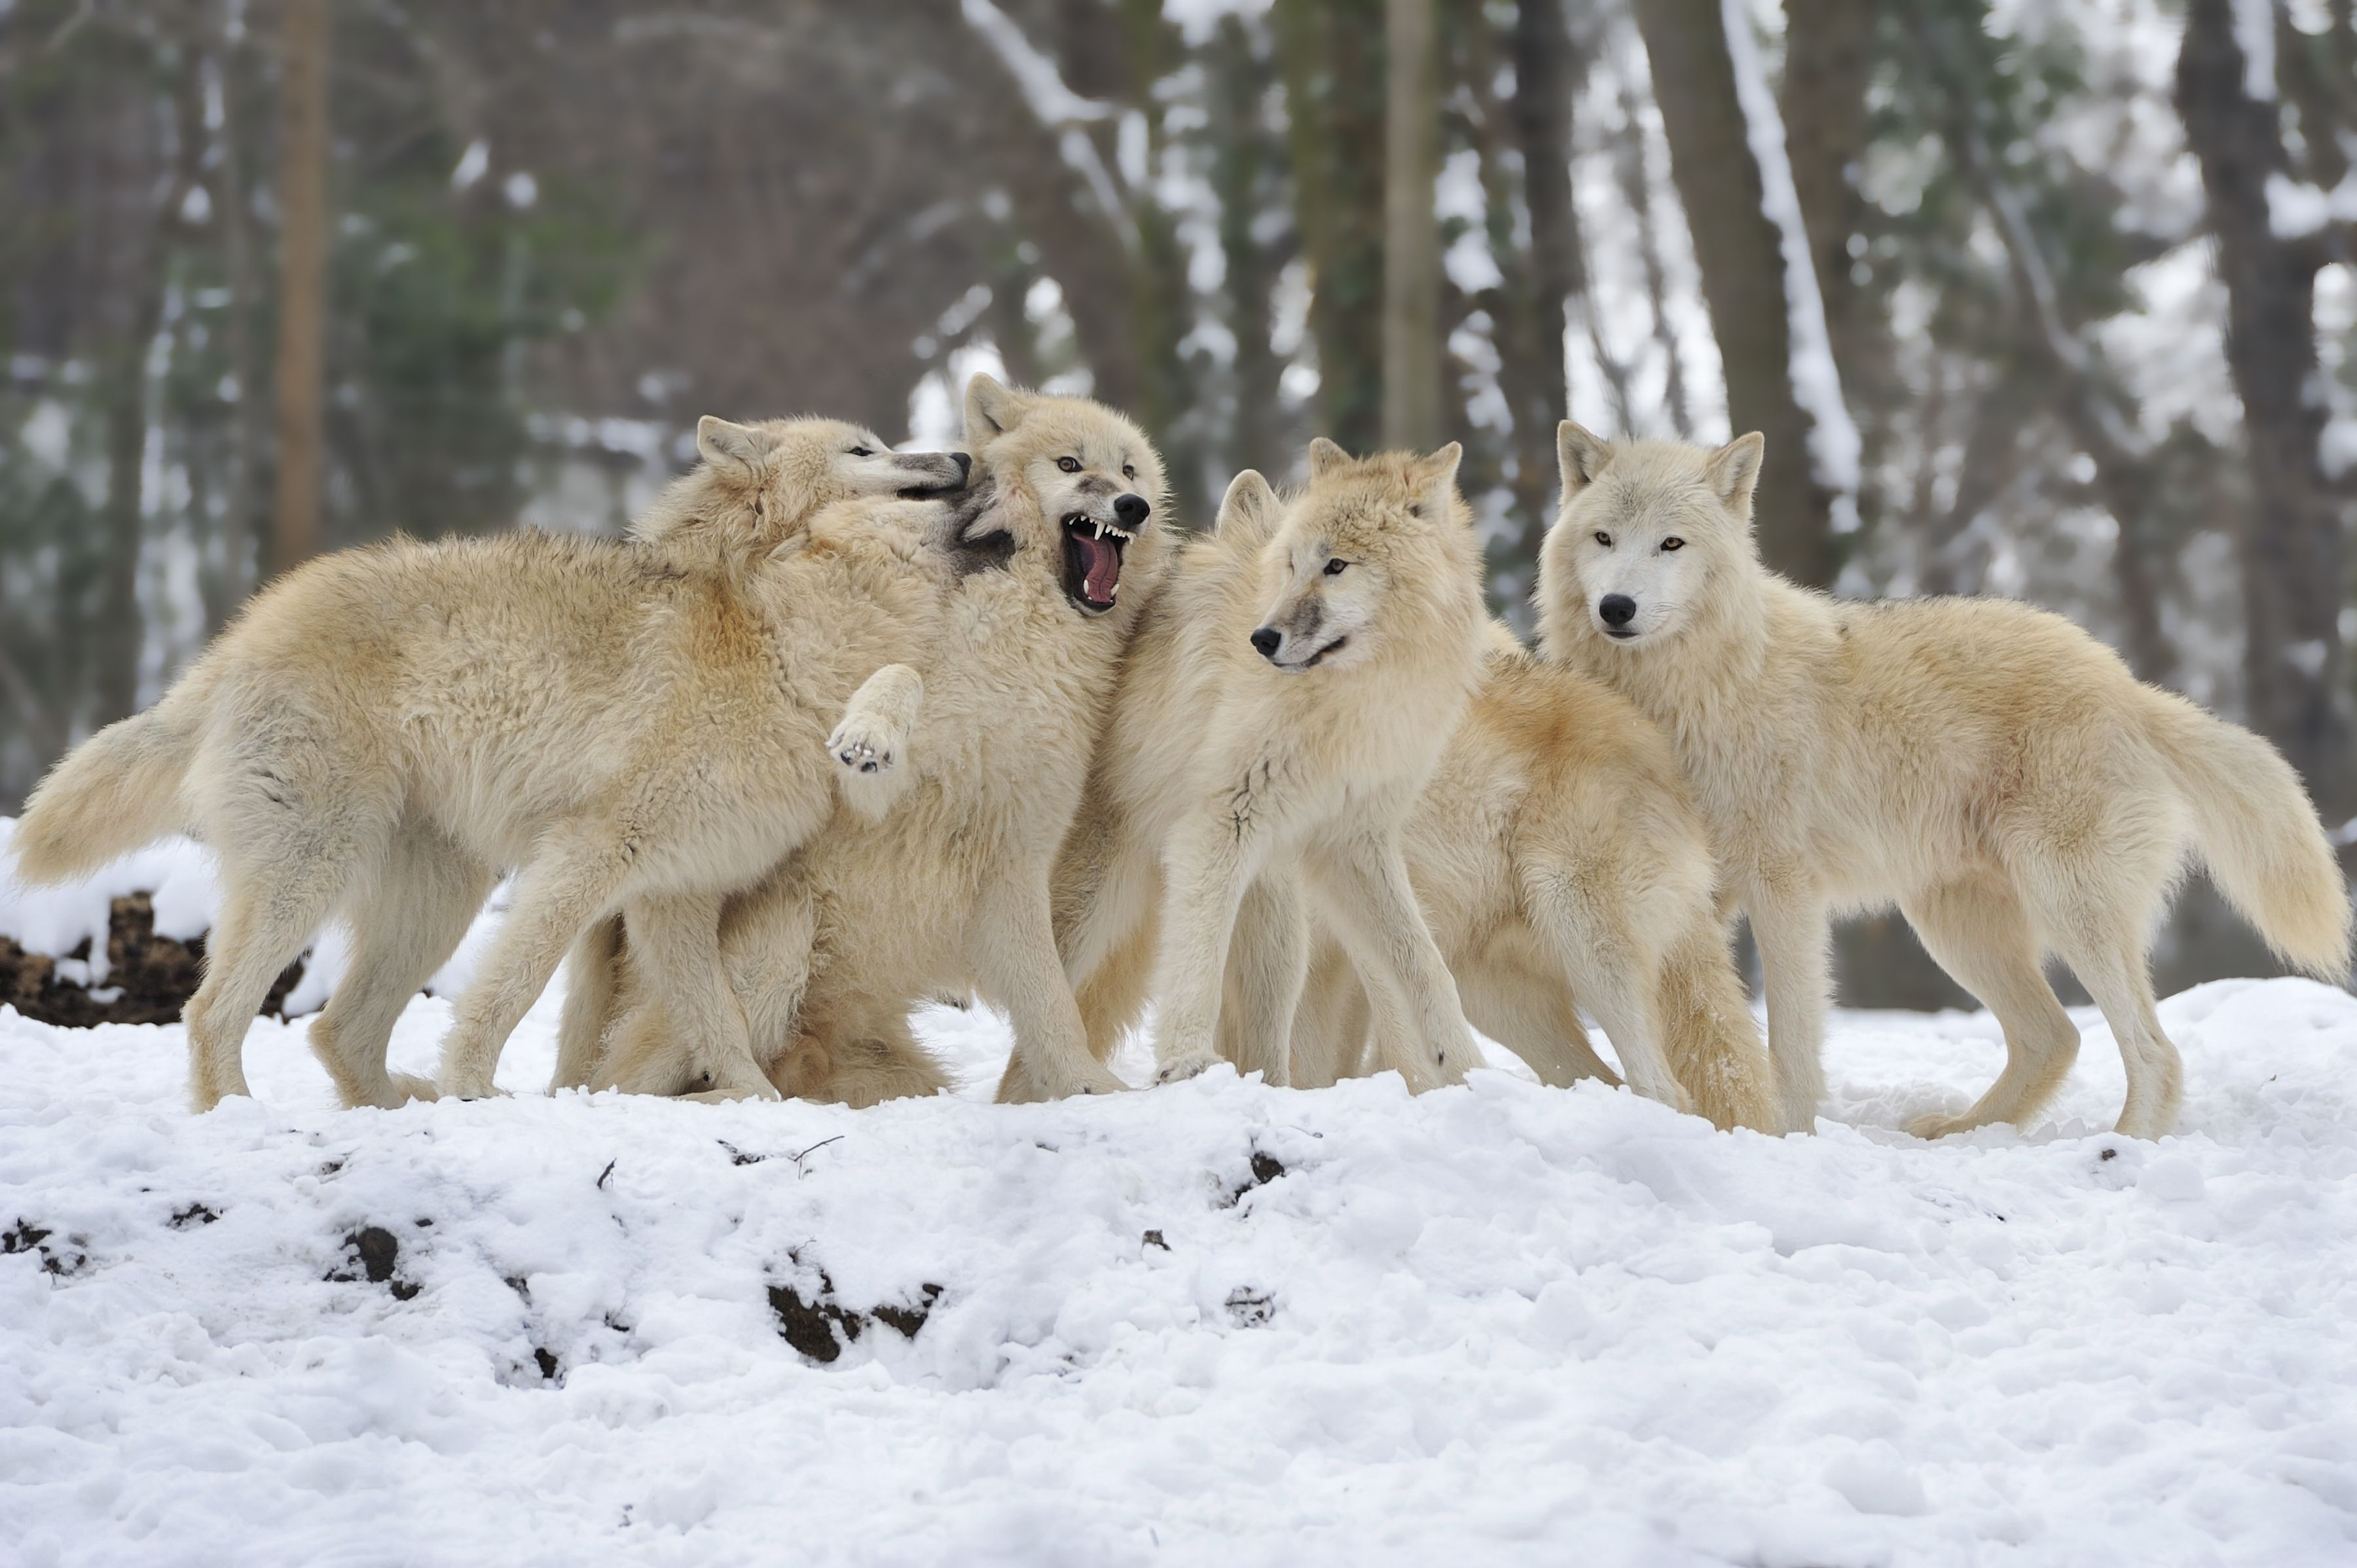 Wolf Pack Wallpapers - Top Free Wolf Pack Backgrounds ... - photo#25